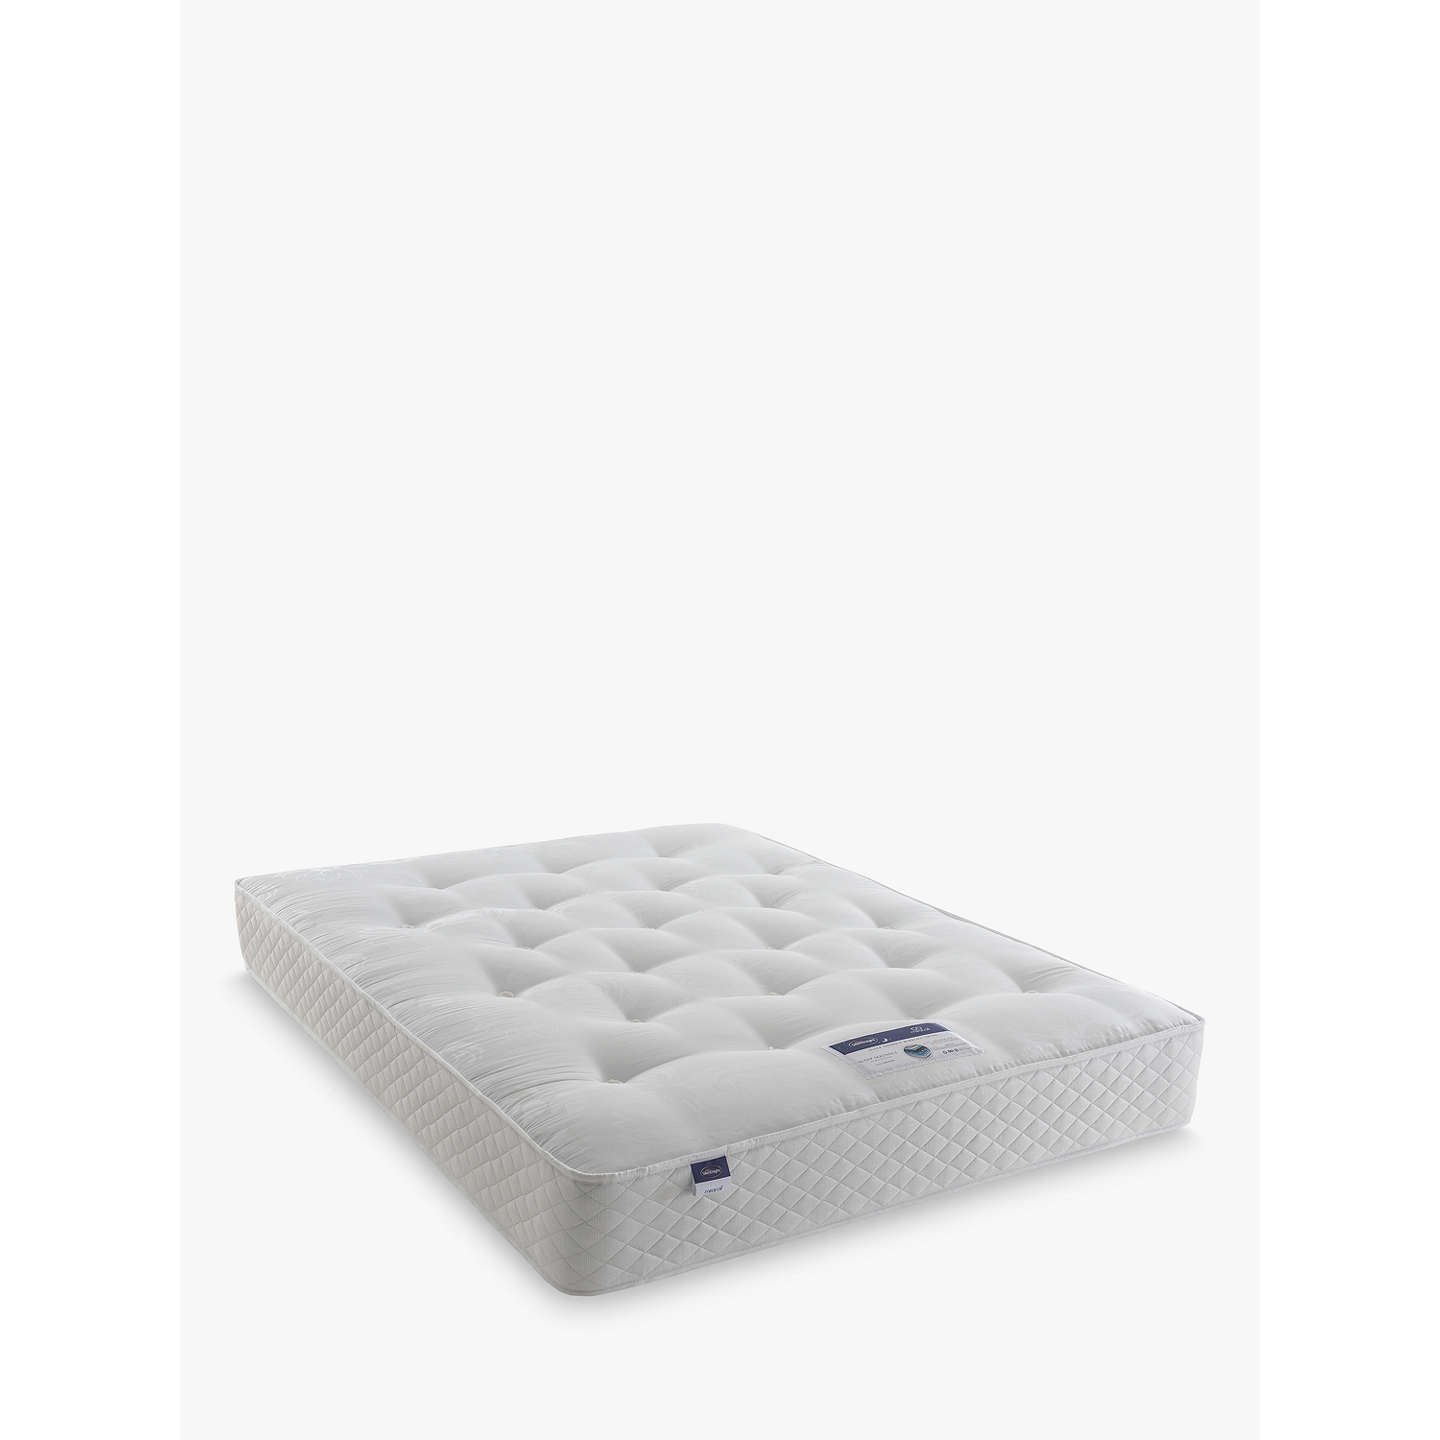 BuySilentnight Sleep Soundly Miracoil Ortho Mattress, Firm, Double Online at johnlewis.com